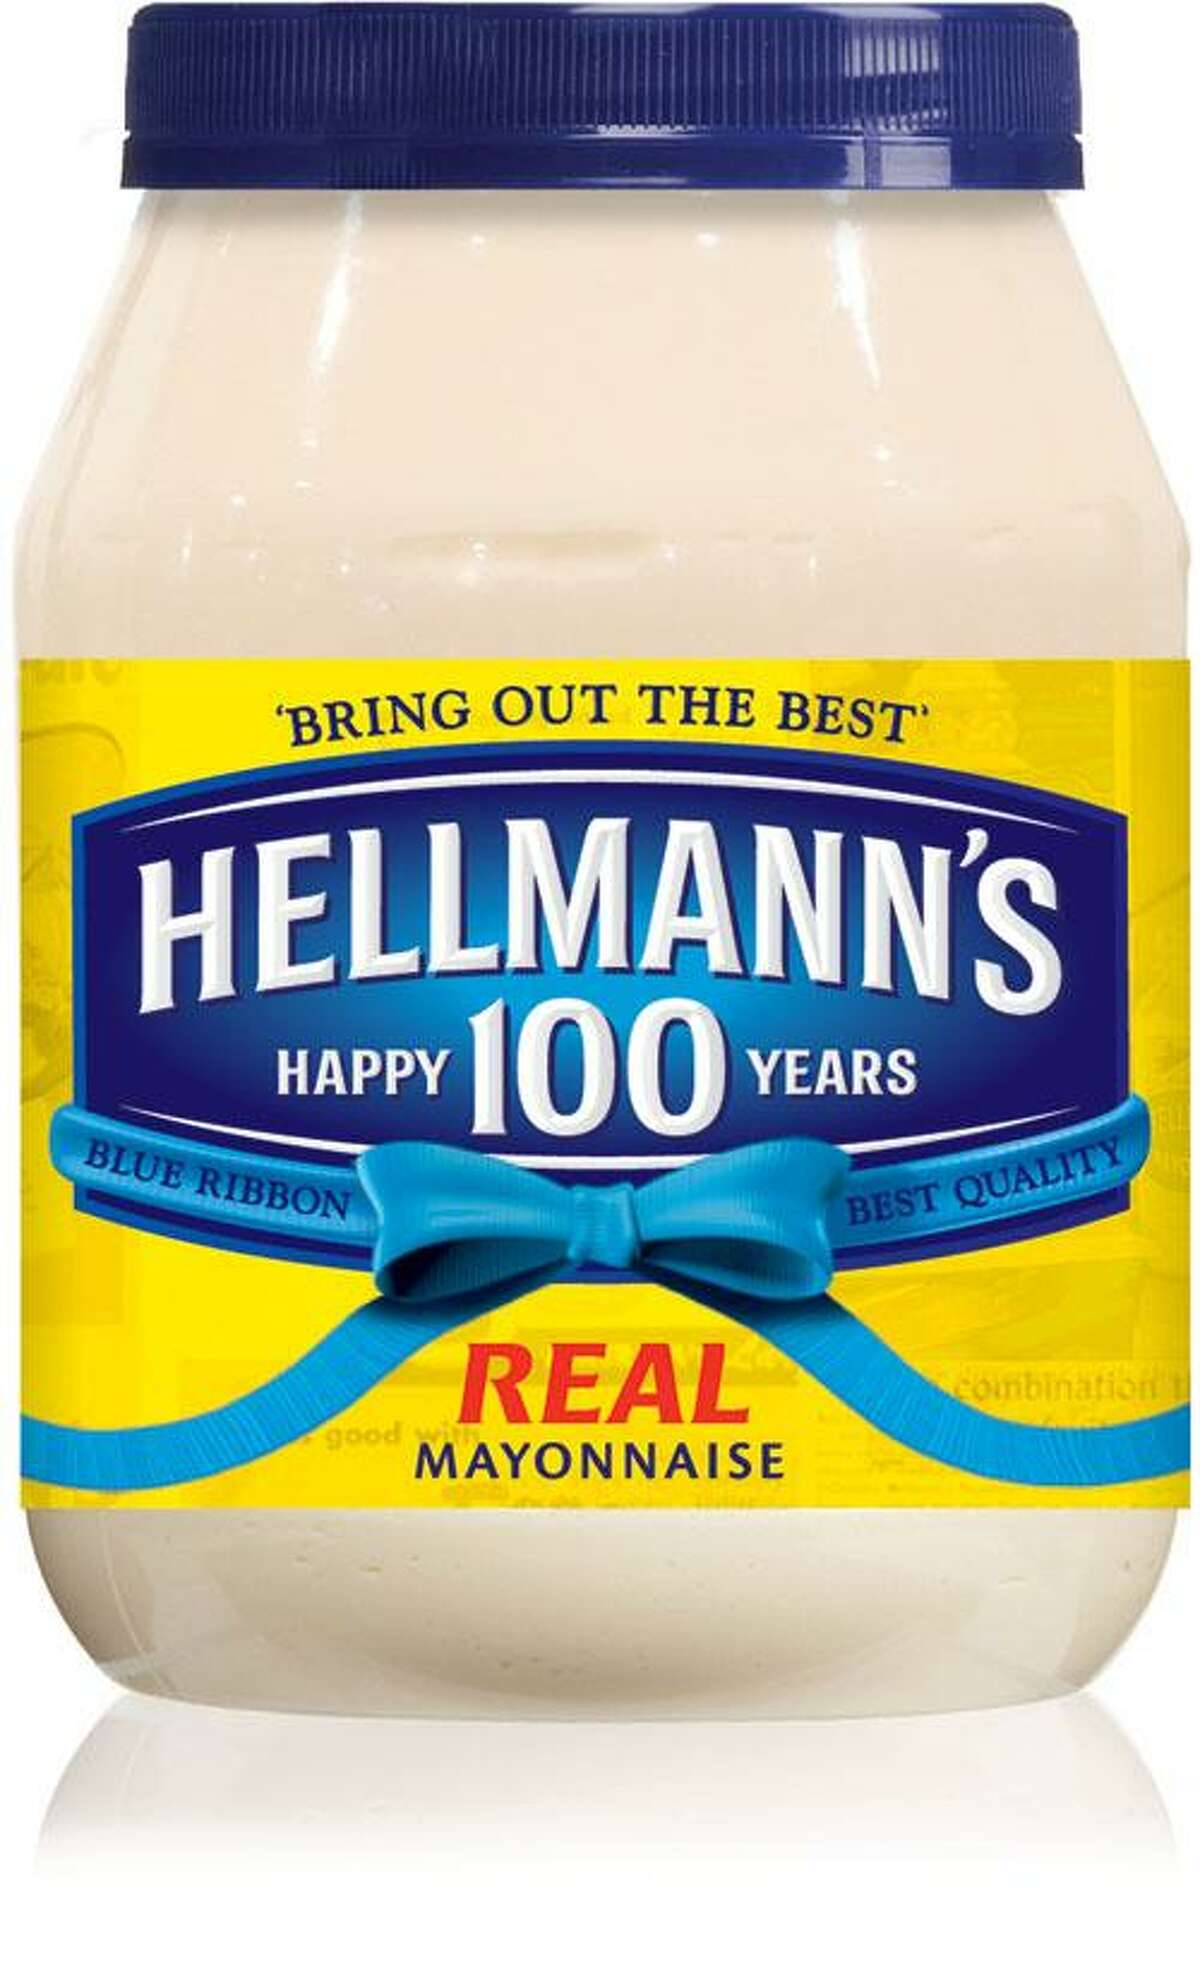 Millennials are still, kind of, using mayonnaise - just check the ingredients in aioli.